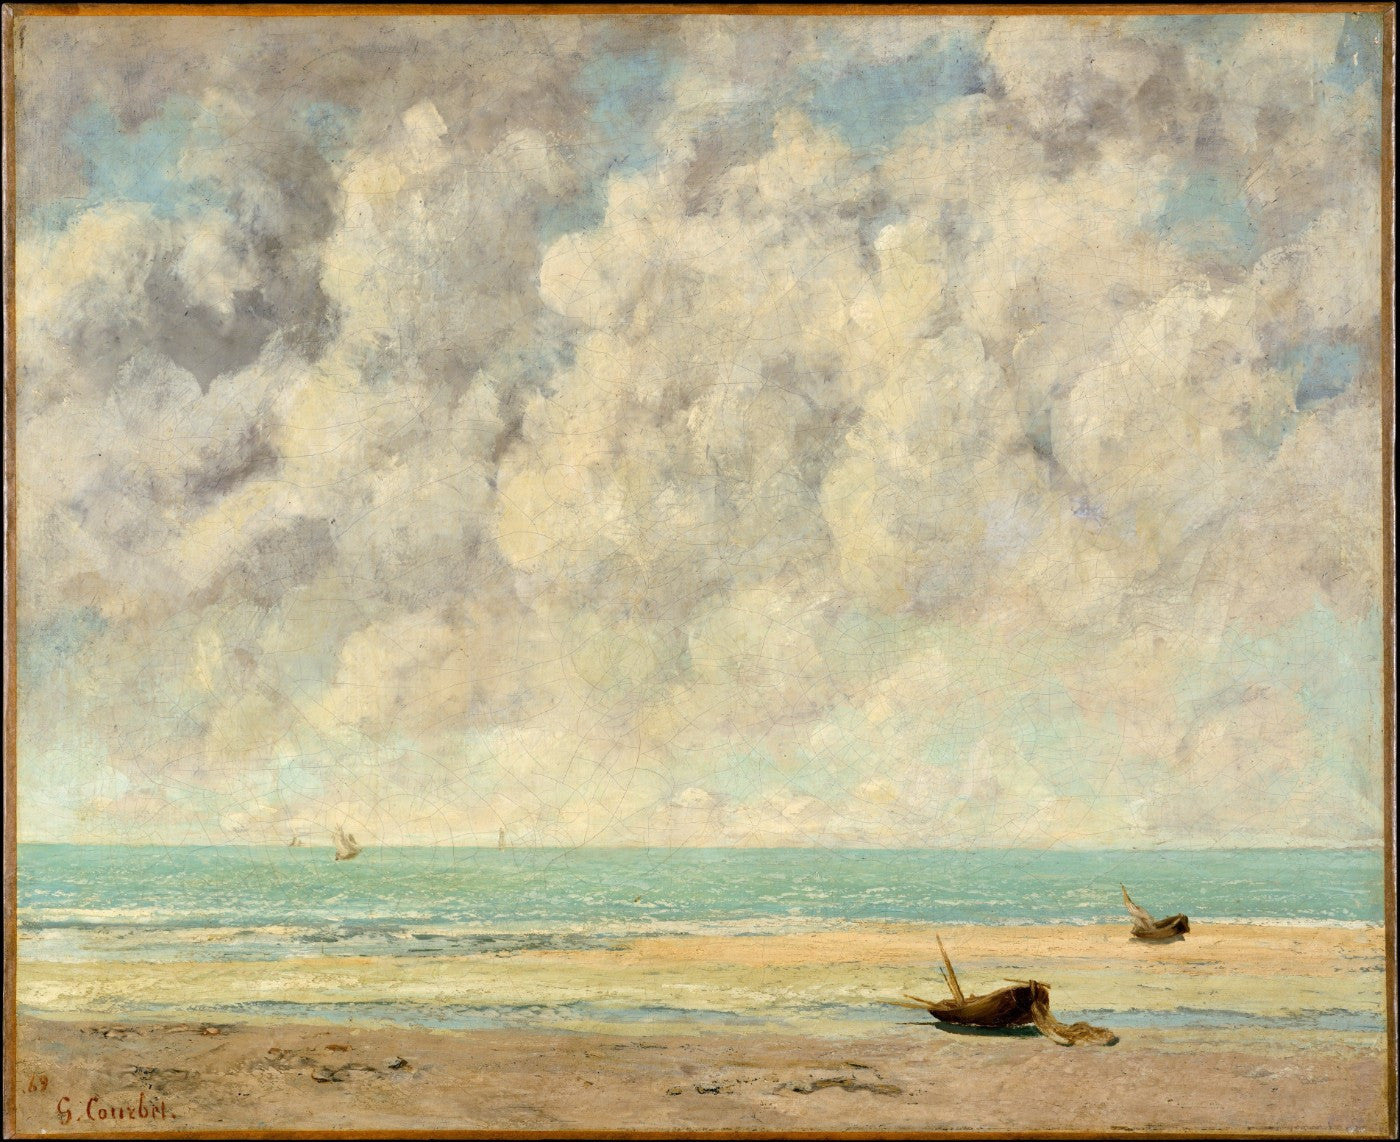 Gustave Courbet Paintings | Buy Posters, Frames, Canvas, Digital Art ...